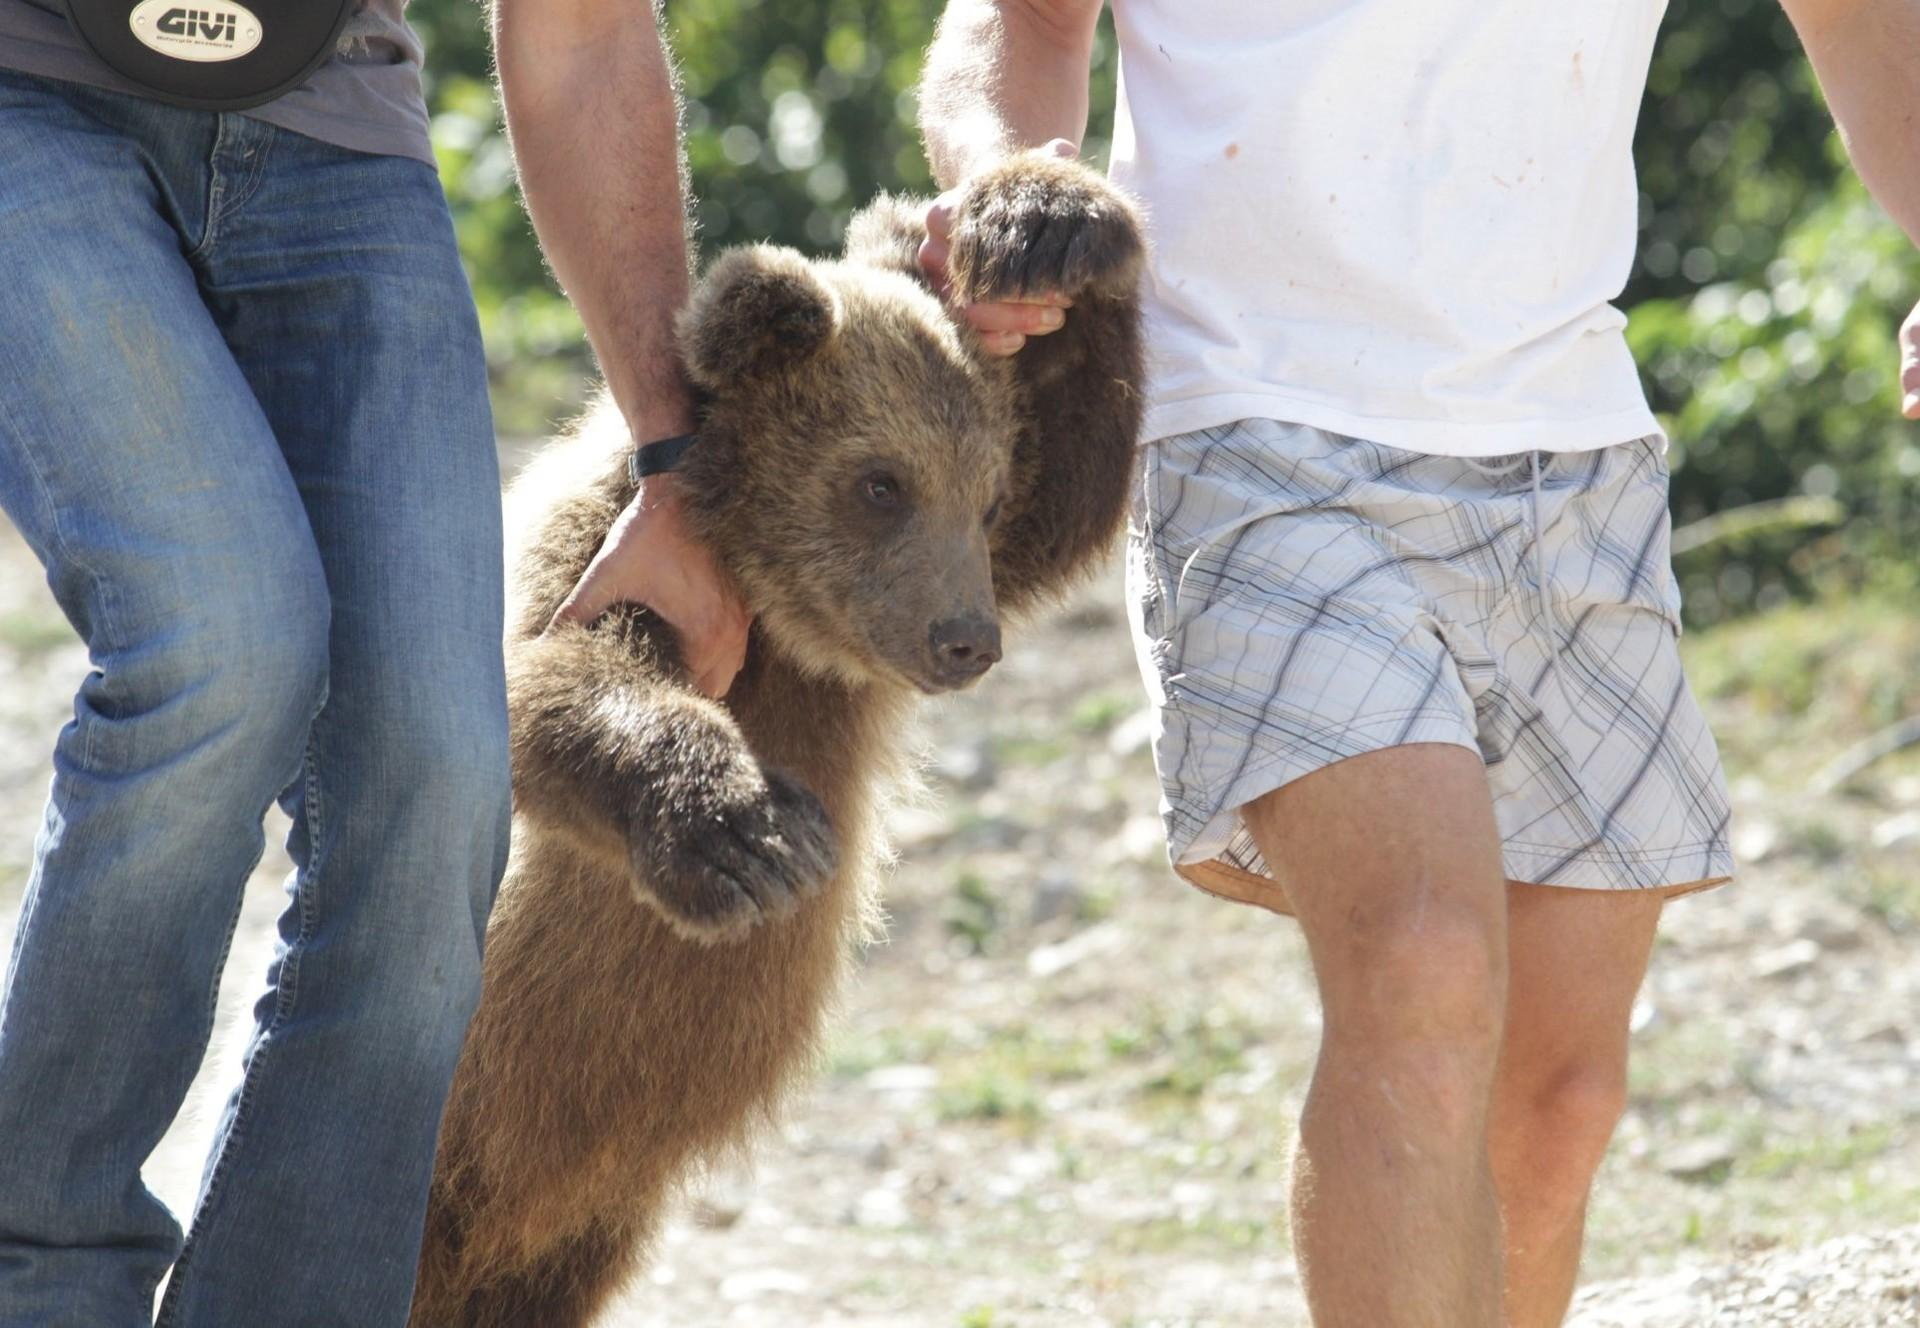 Bear cub kept as restaurant entertainment in Albania